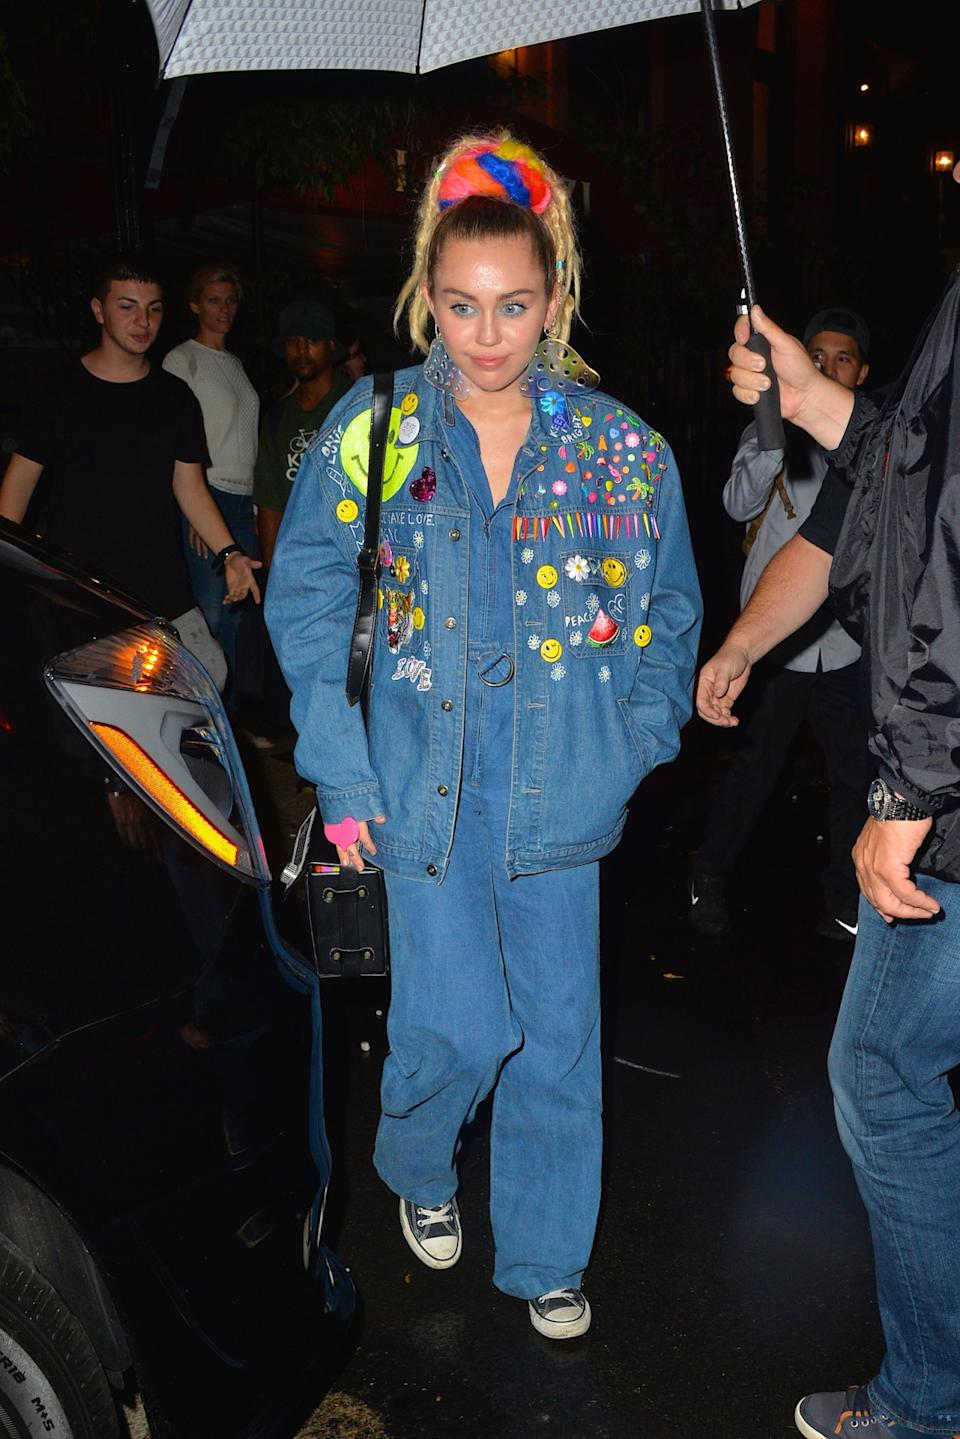 Miley Cyrus Wore A Denim Tuxedo Covered In Smiley Faces Flowers